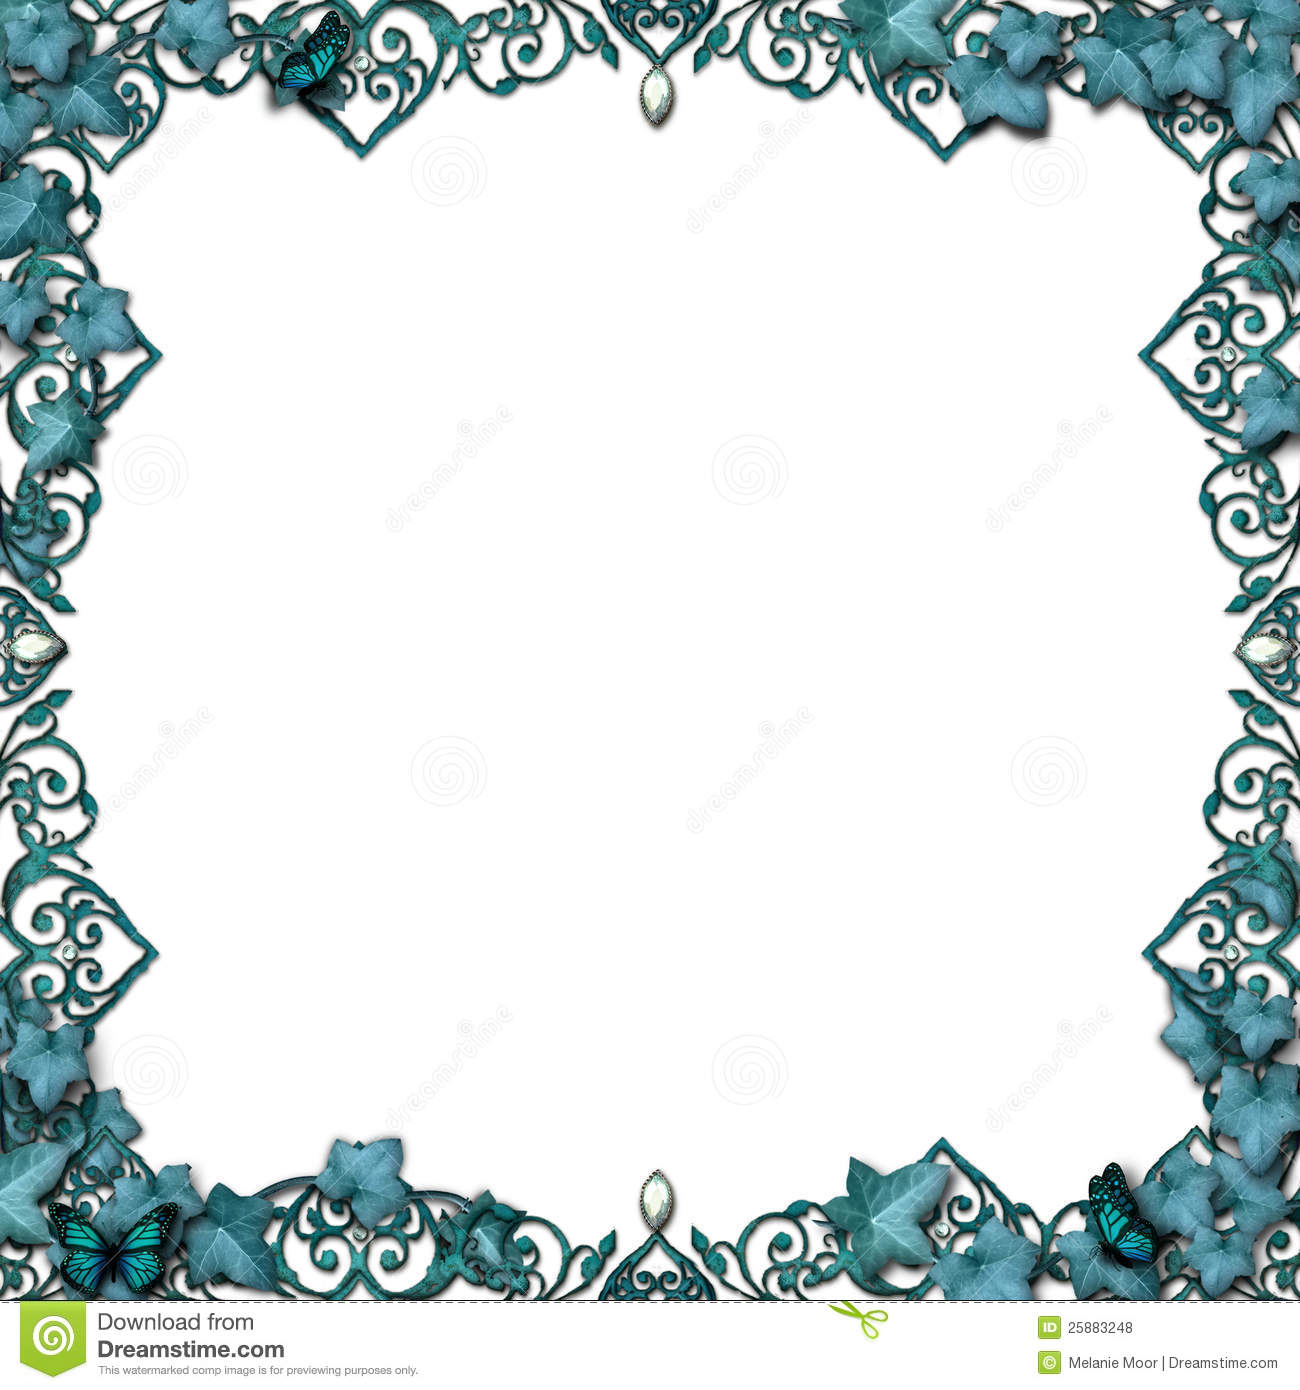 Fairytale Border Vines Flourish Isolated Royalty Free Stock Photos ...